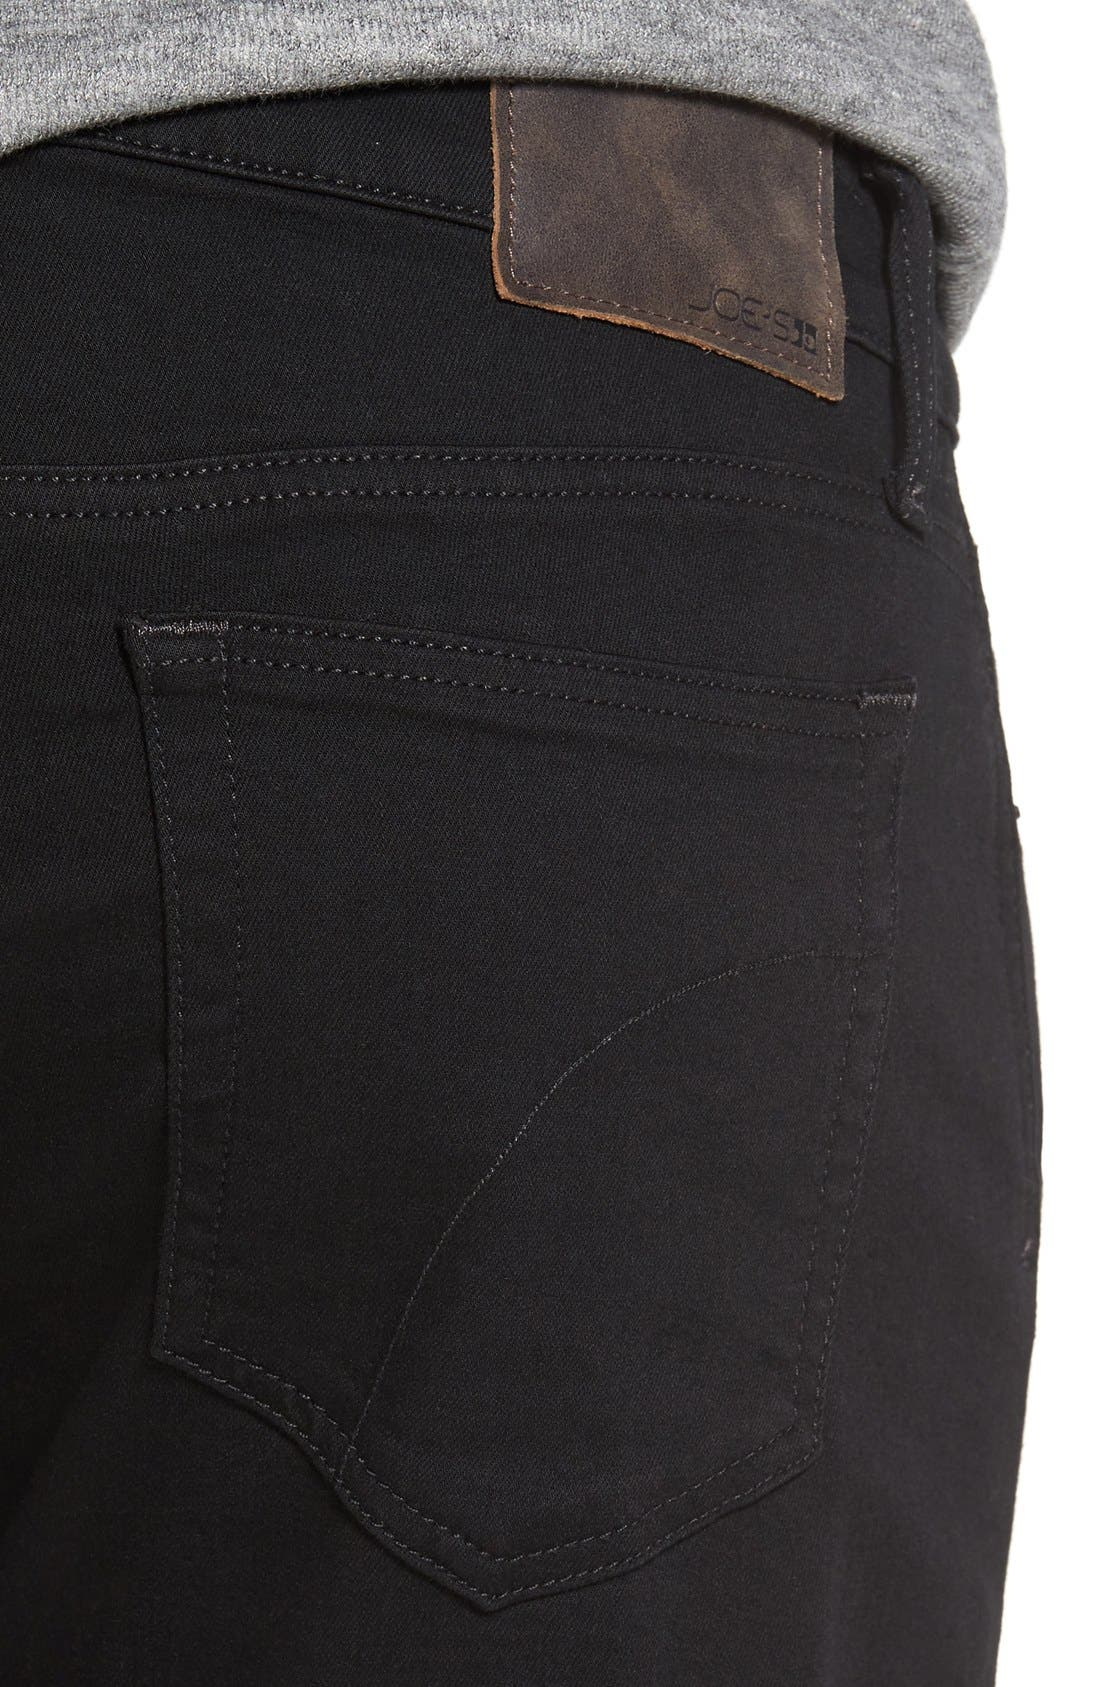 Brixton Kinetic Slim Straight Fit Jeans,                             Alternate thumbnail 5, color,                             001